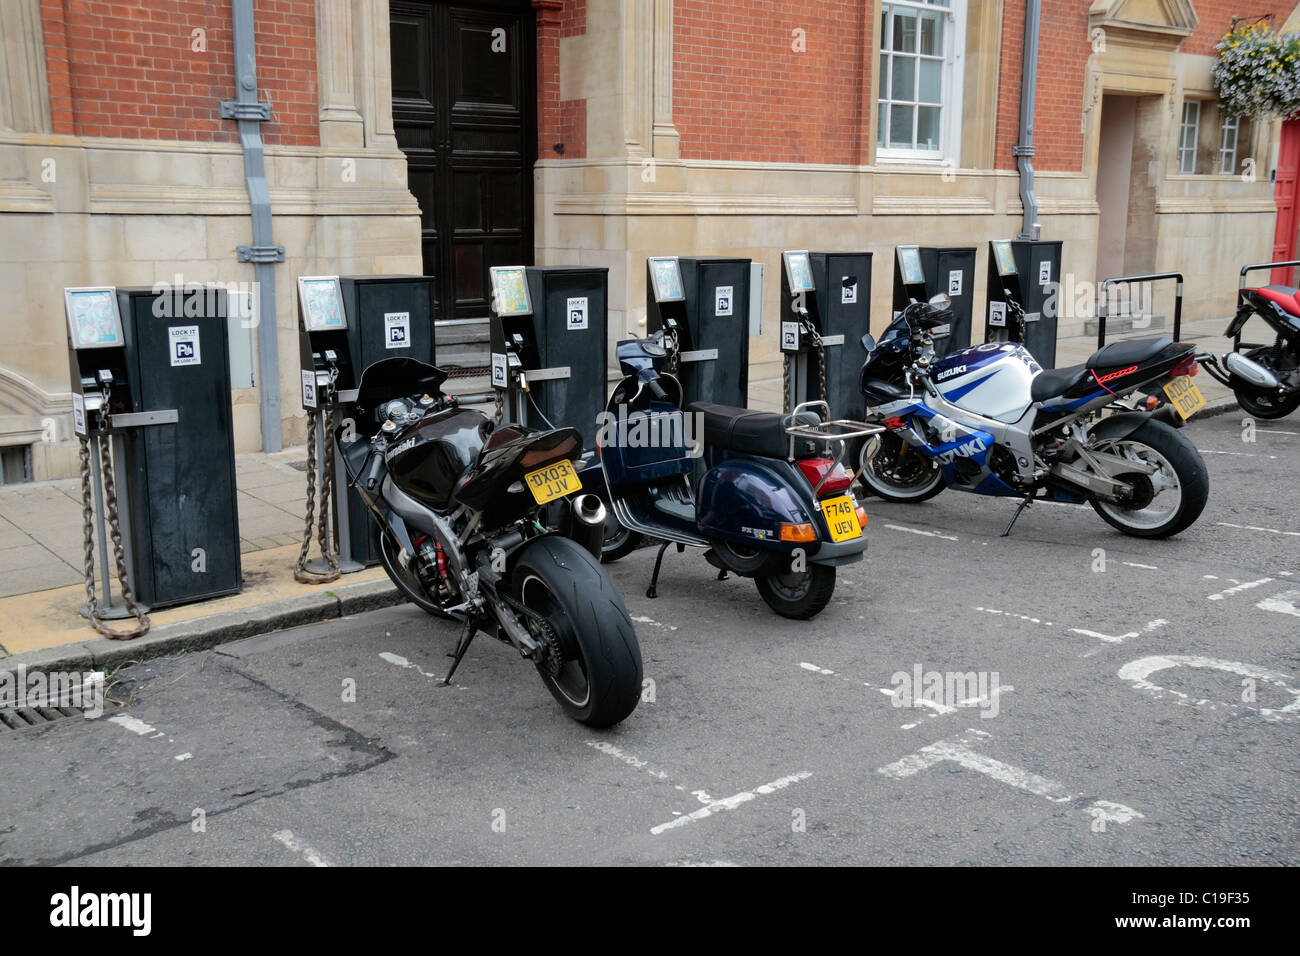 A motorcycle parking area with parking machines/meters close to the town centre of Leicester, Leicestershire, England. - Stock Image